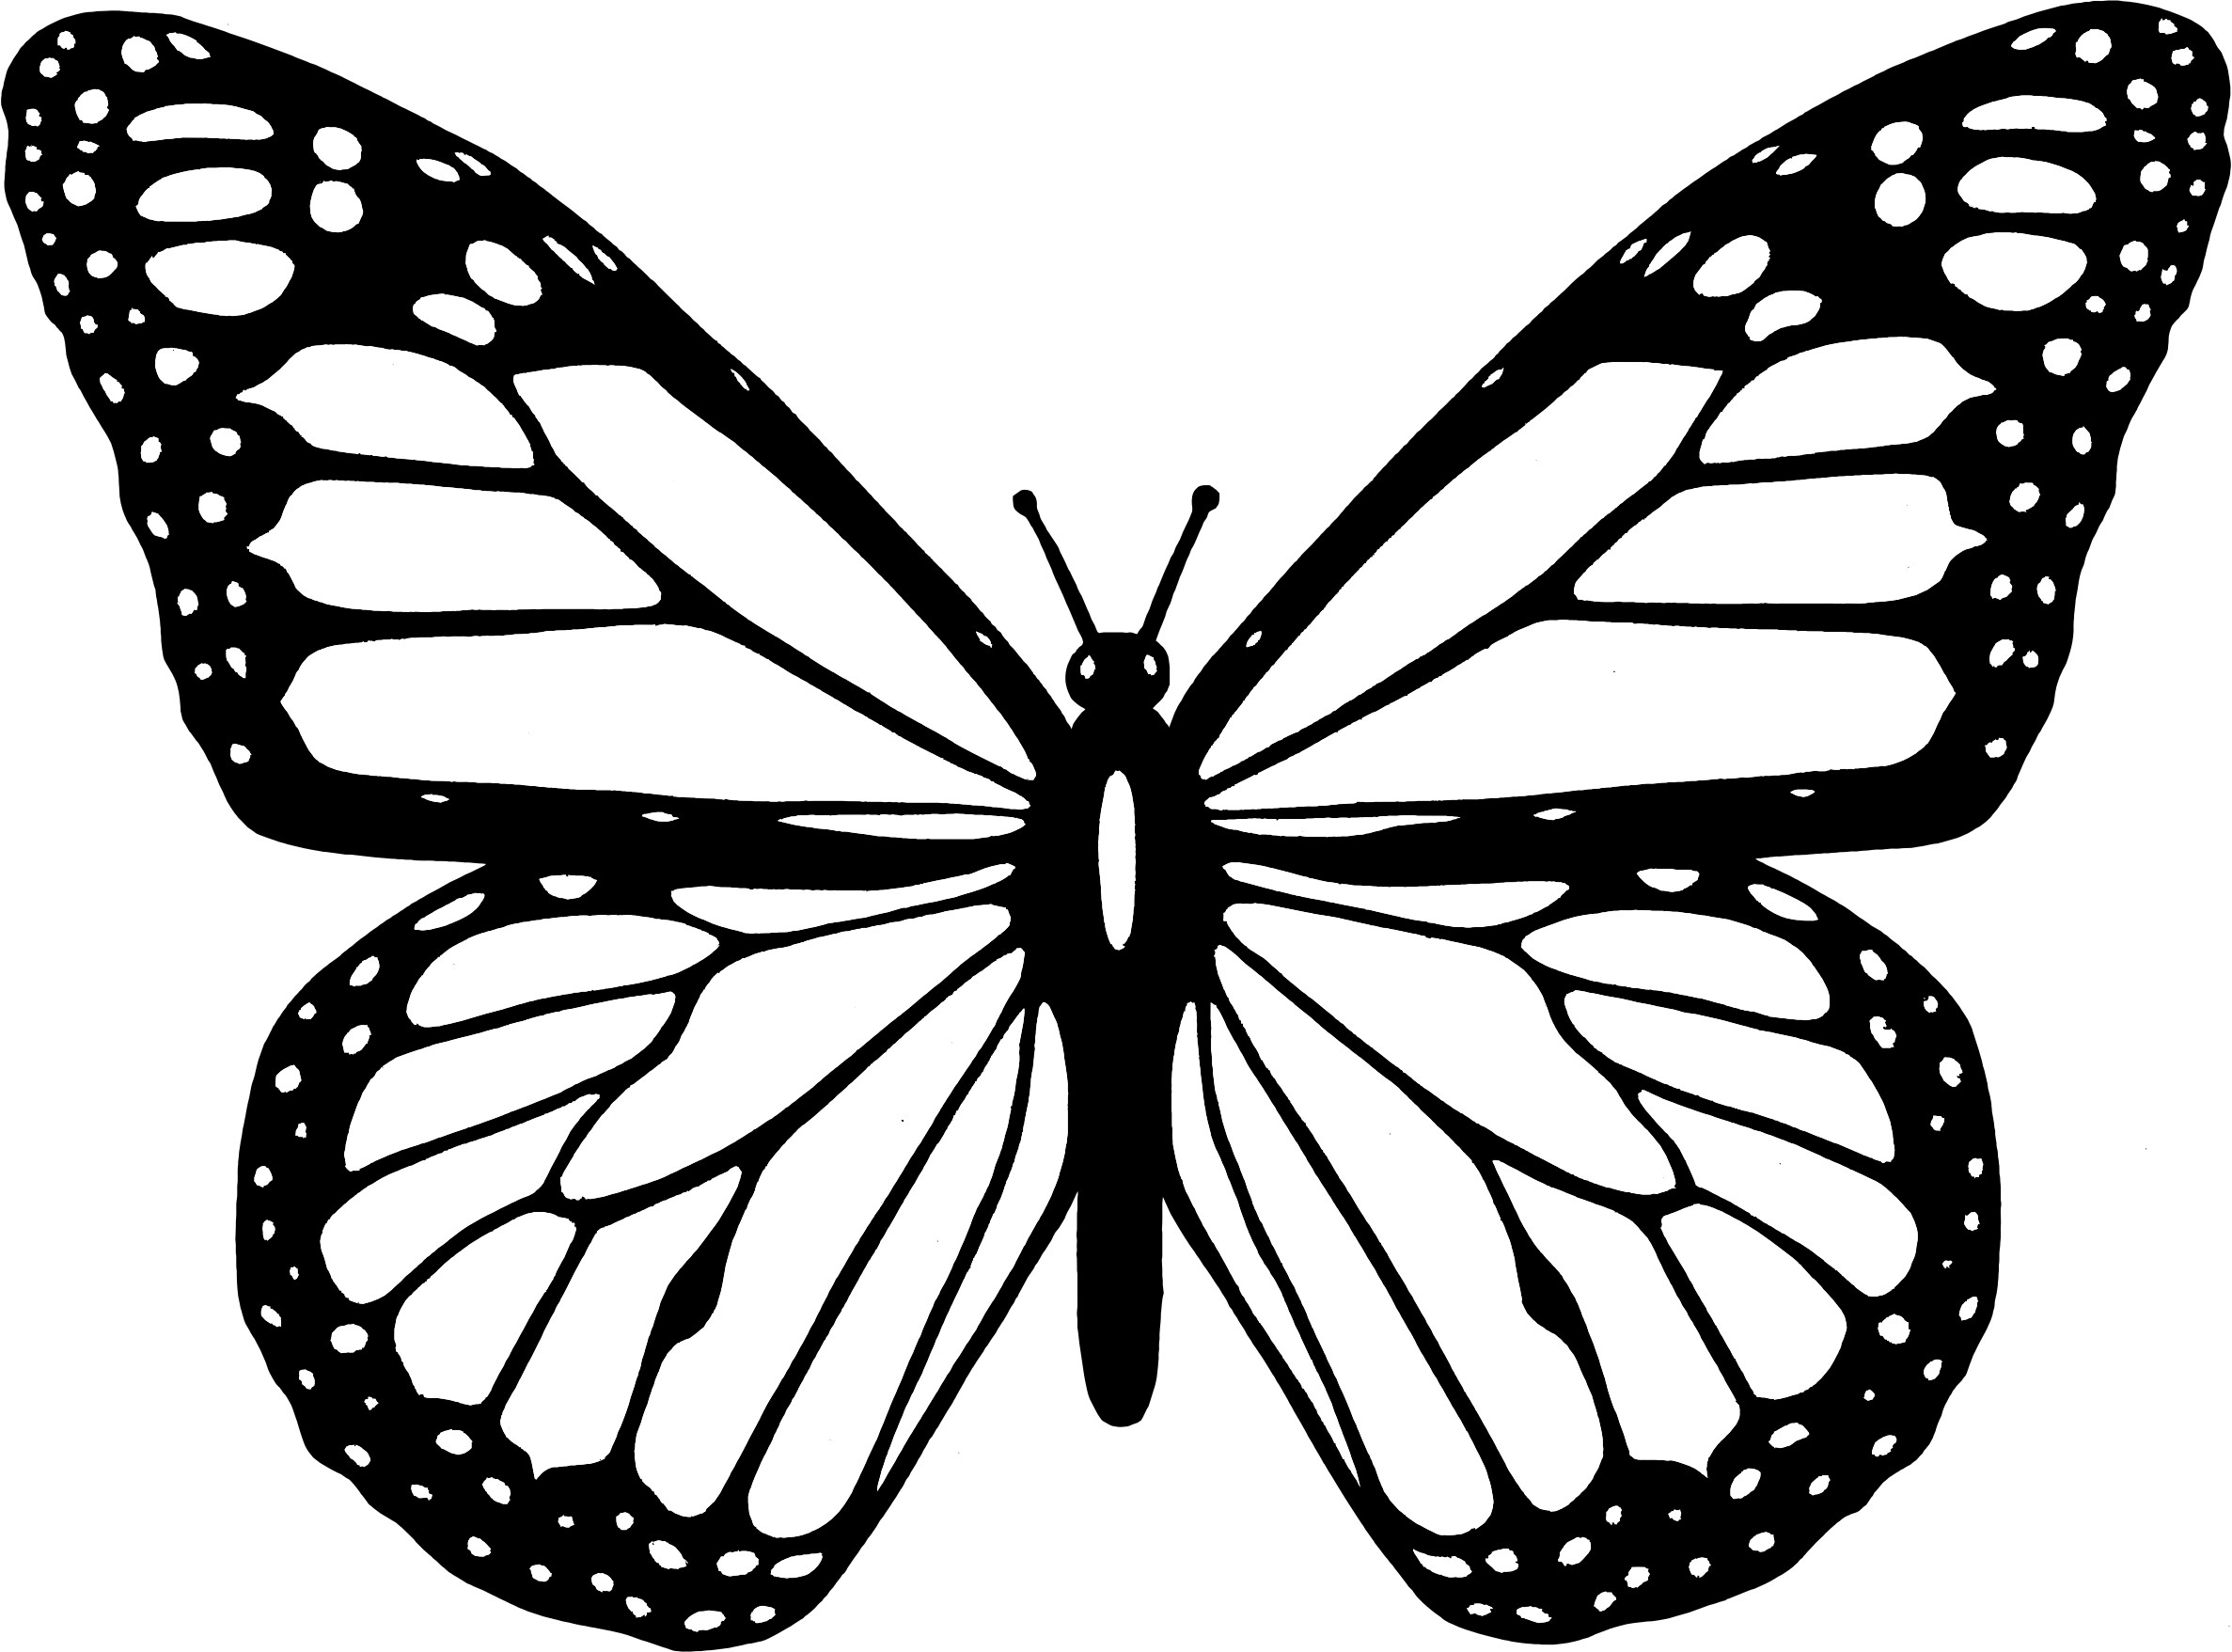 printable butterfly coloring page beautiful butterfly coloring pages at getdrawings free butterfly printable page coloring